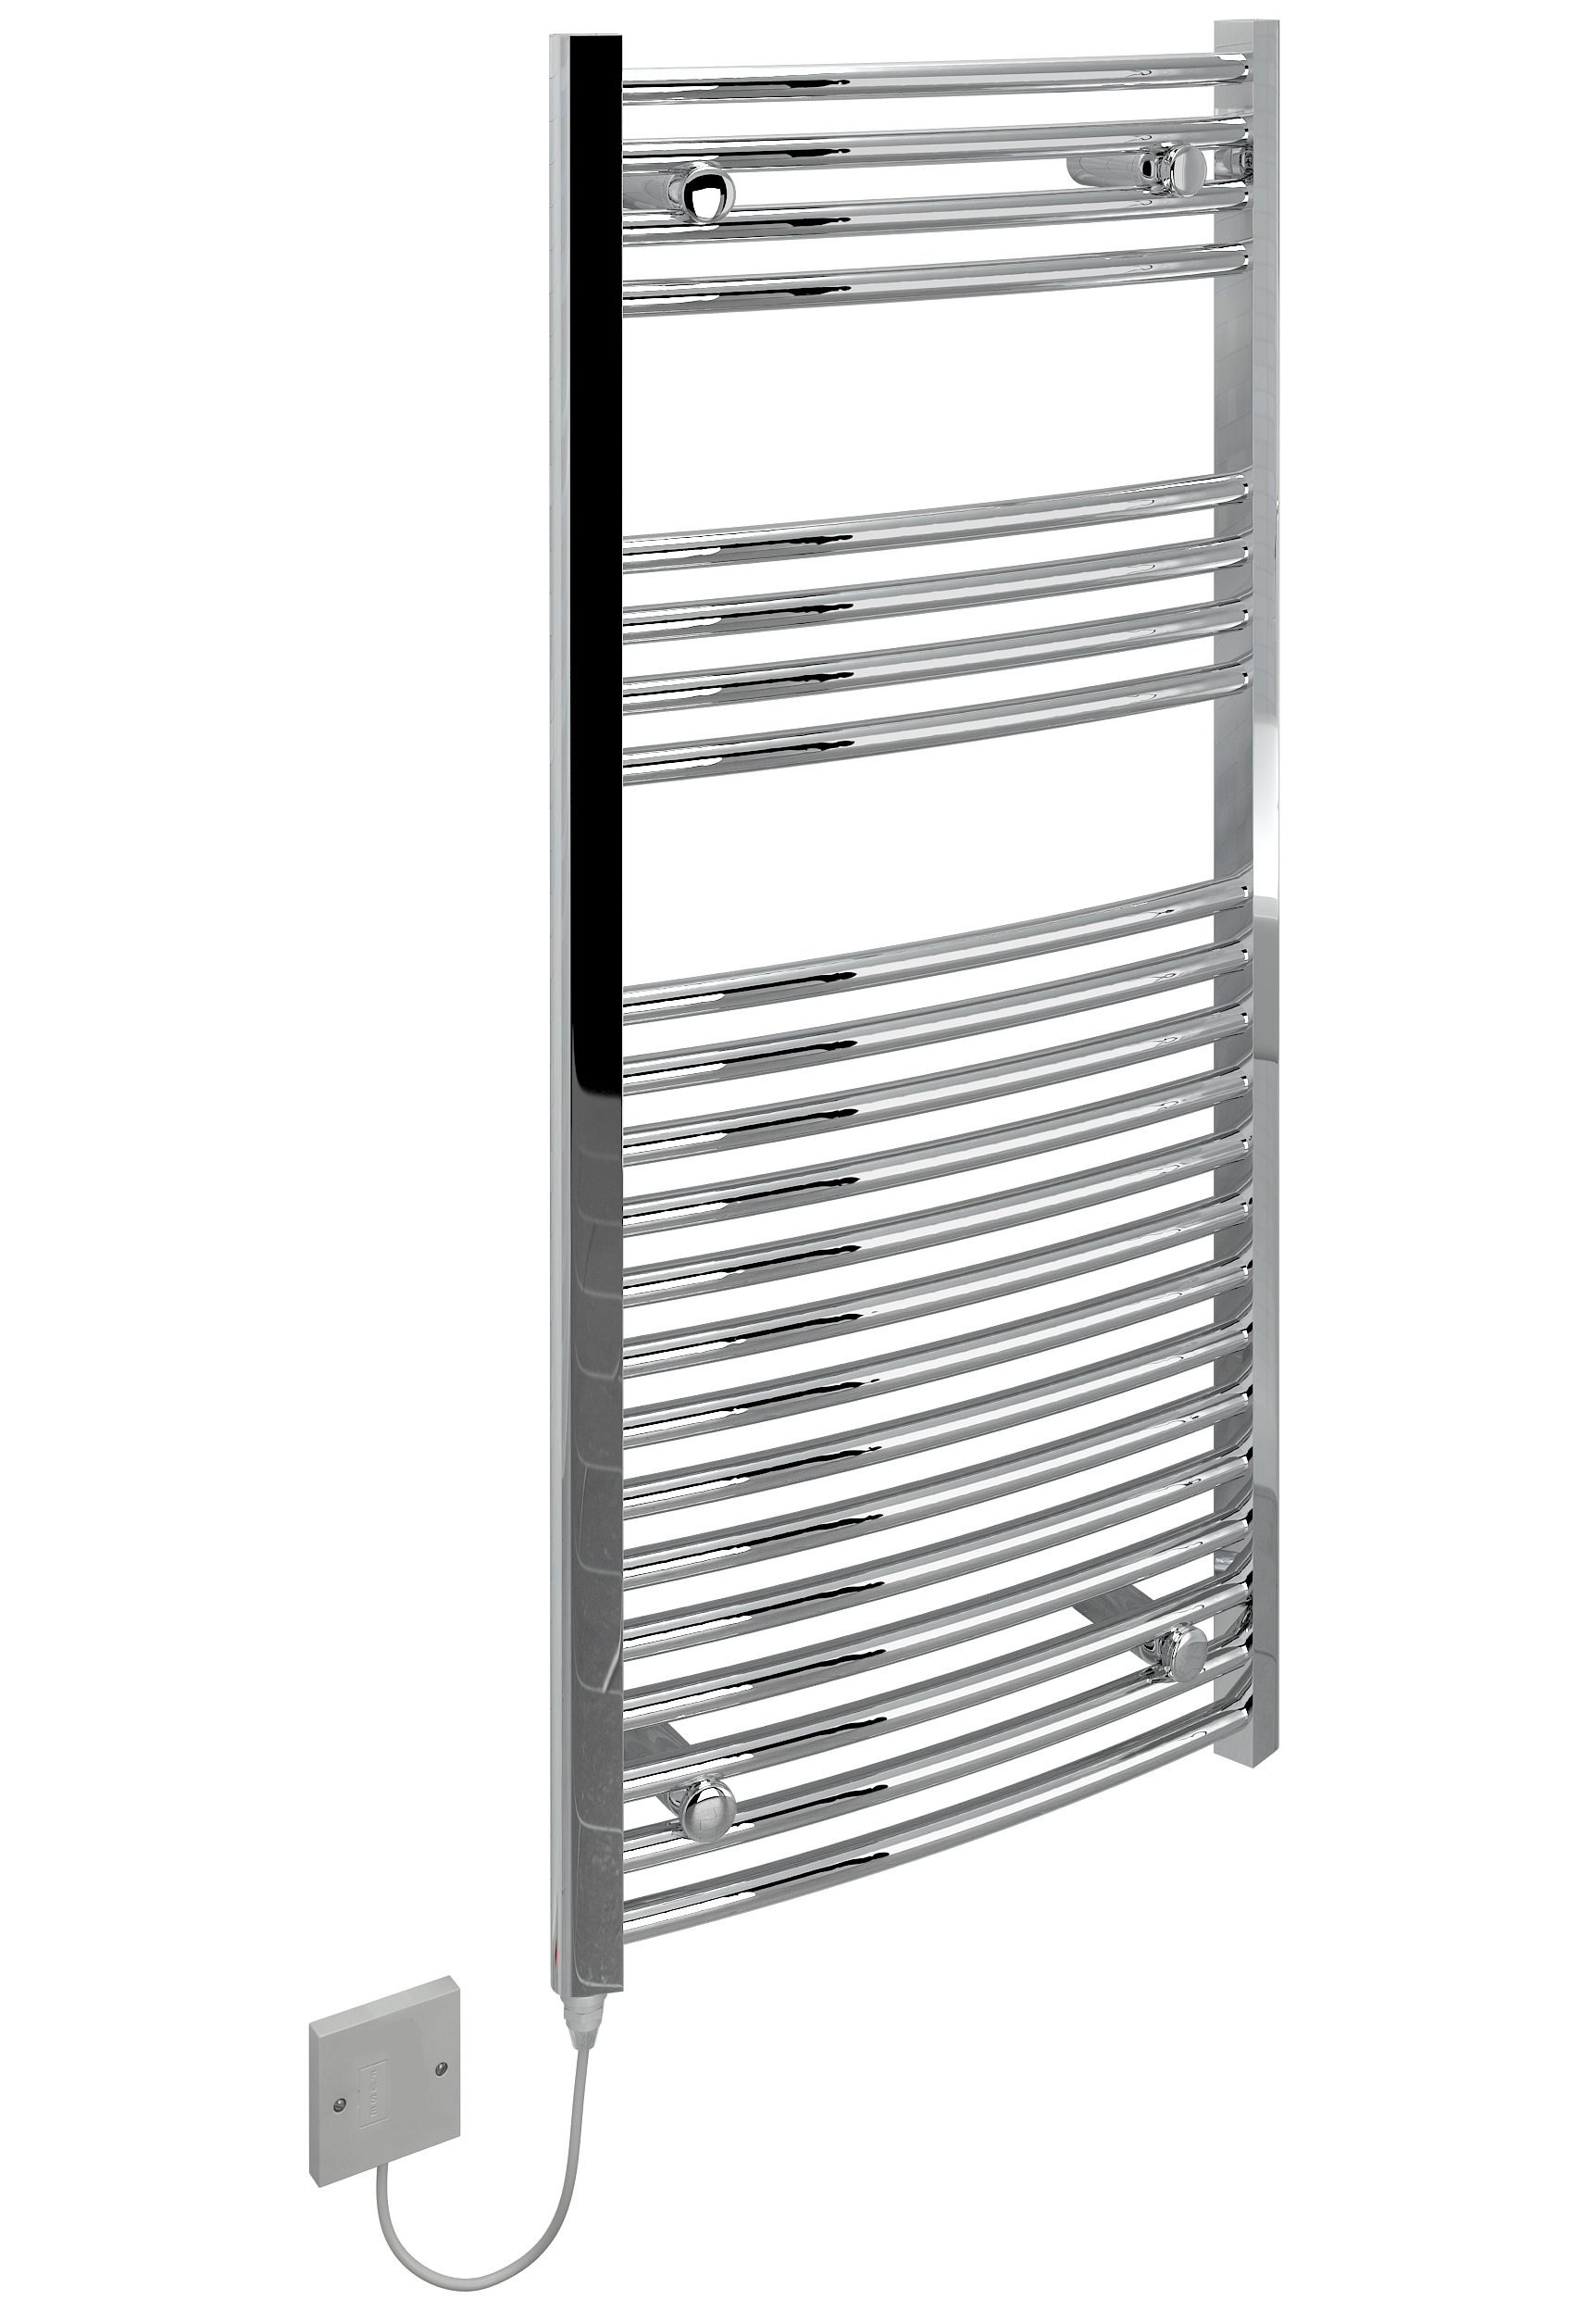 Kudox Electric Towel Rail Curved Chrome 250W (500 x 1100mm